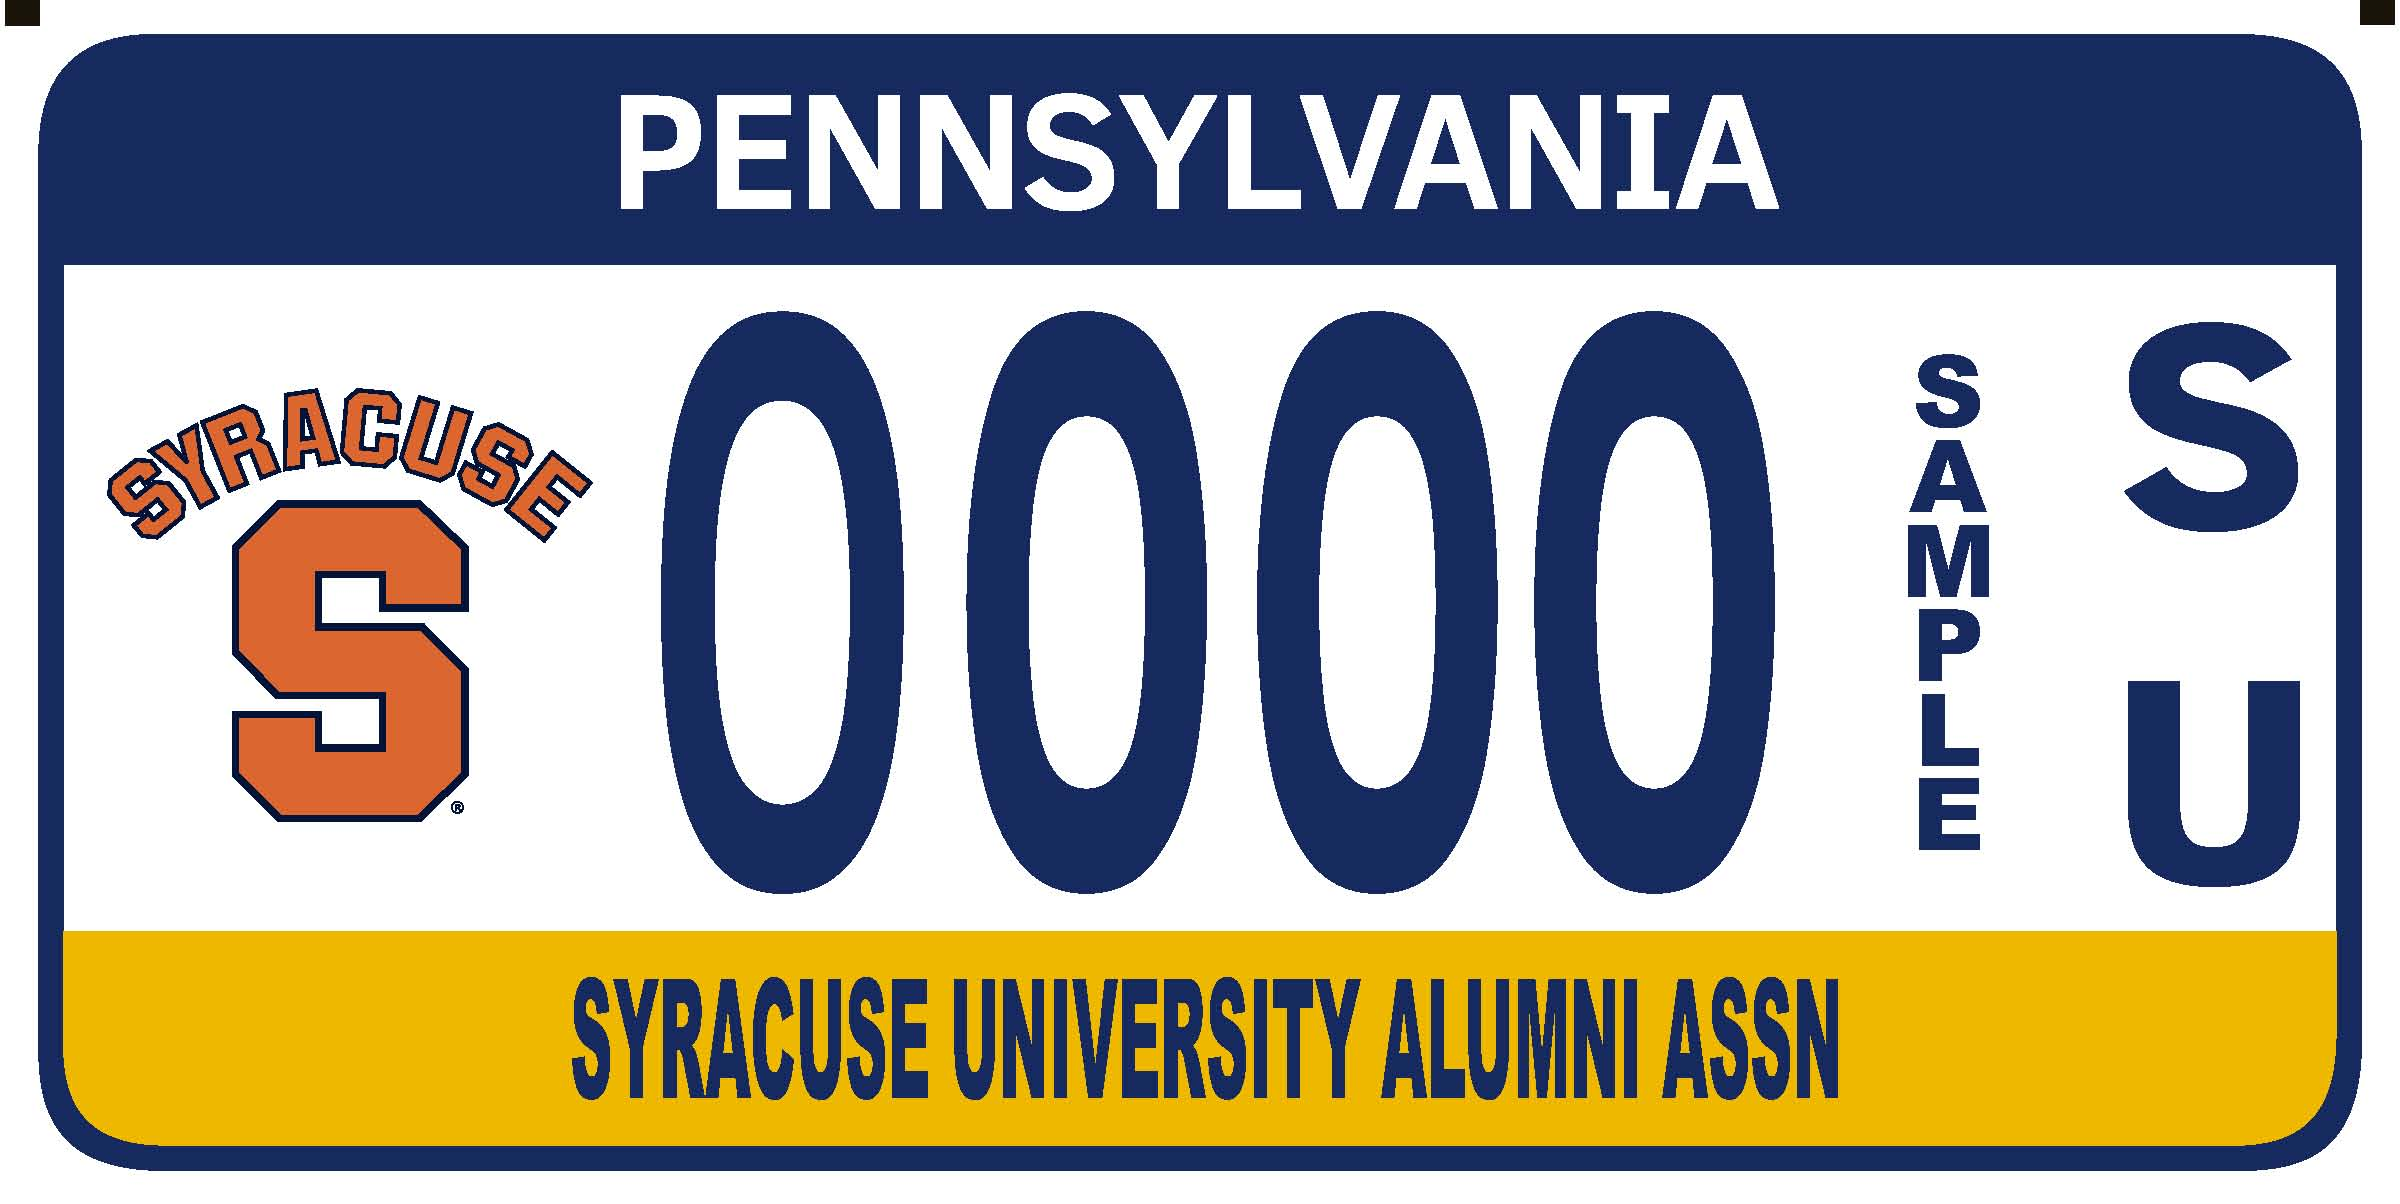 Syracuse University Alumni Assn.